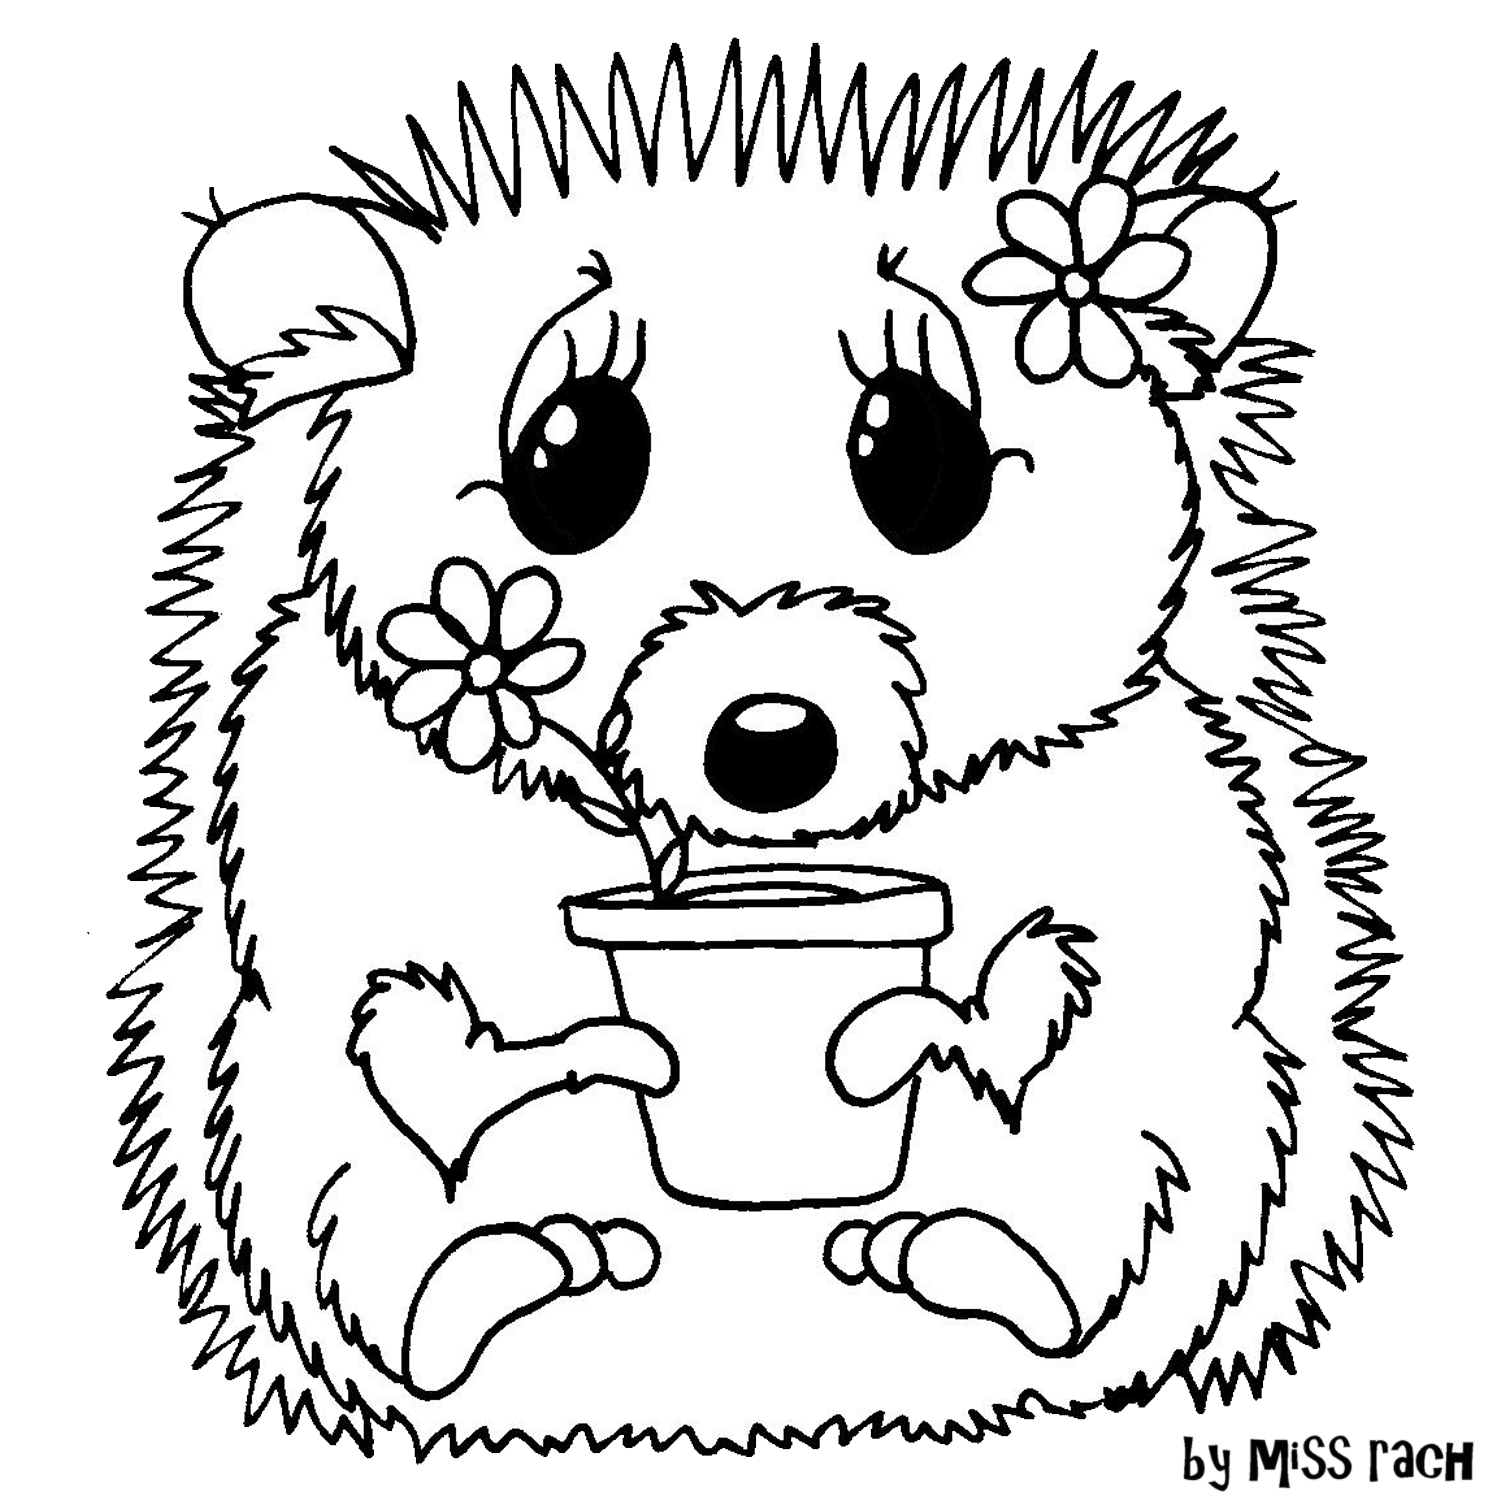 http://2.bp.blogspot.com/-ET3UDtRY1qI/U6xtWx_W04I/AAAAAAAAE-I/4AlCf8wcGjs/s1600/hedgehog+flower++friend.png